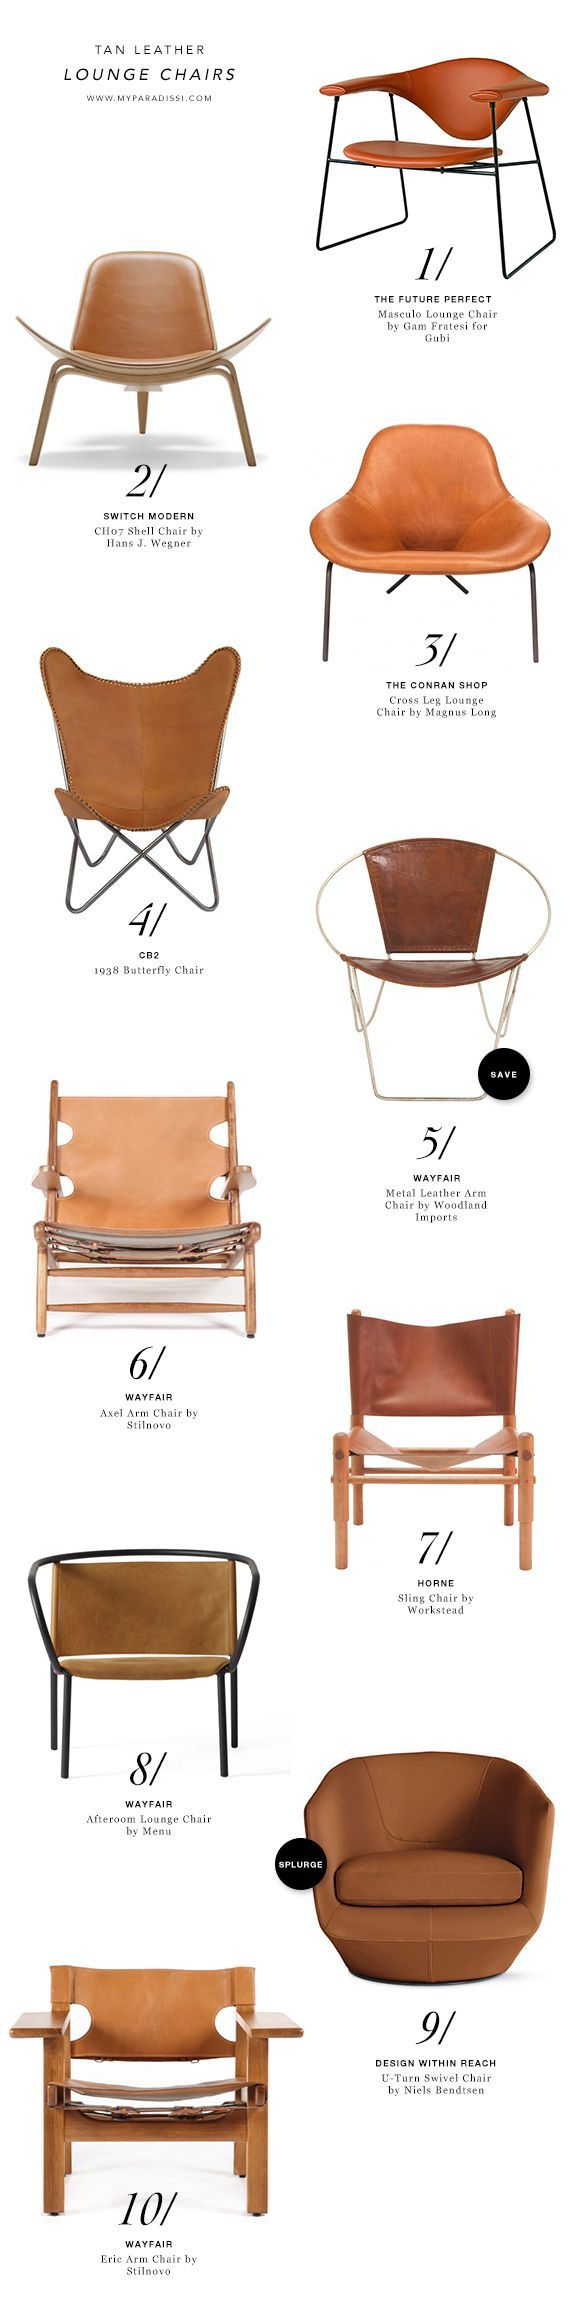 Beach lounge chair side view - 10 Best Tan Leather Lounge Chairs